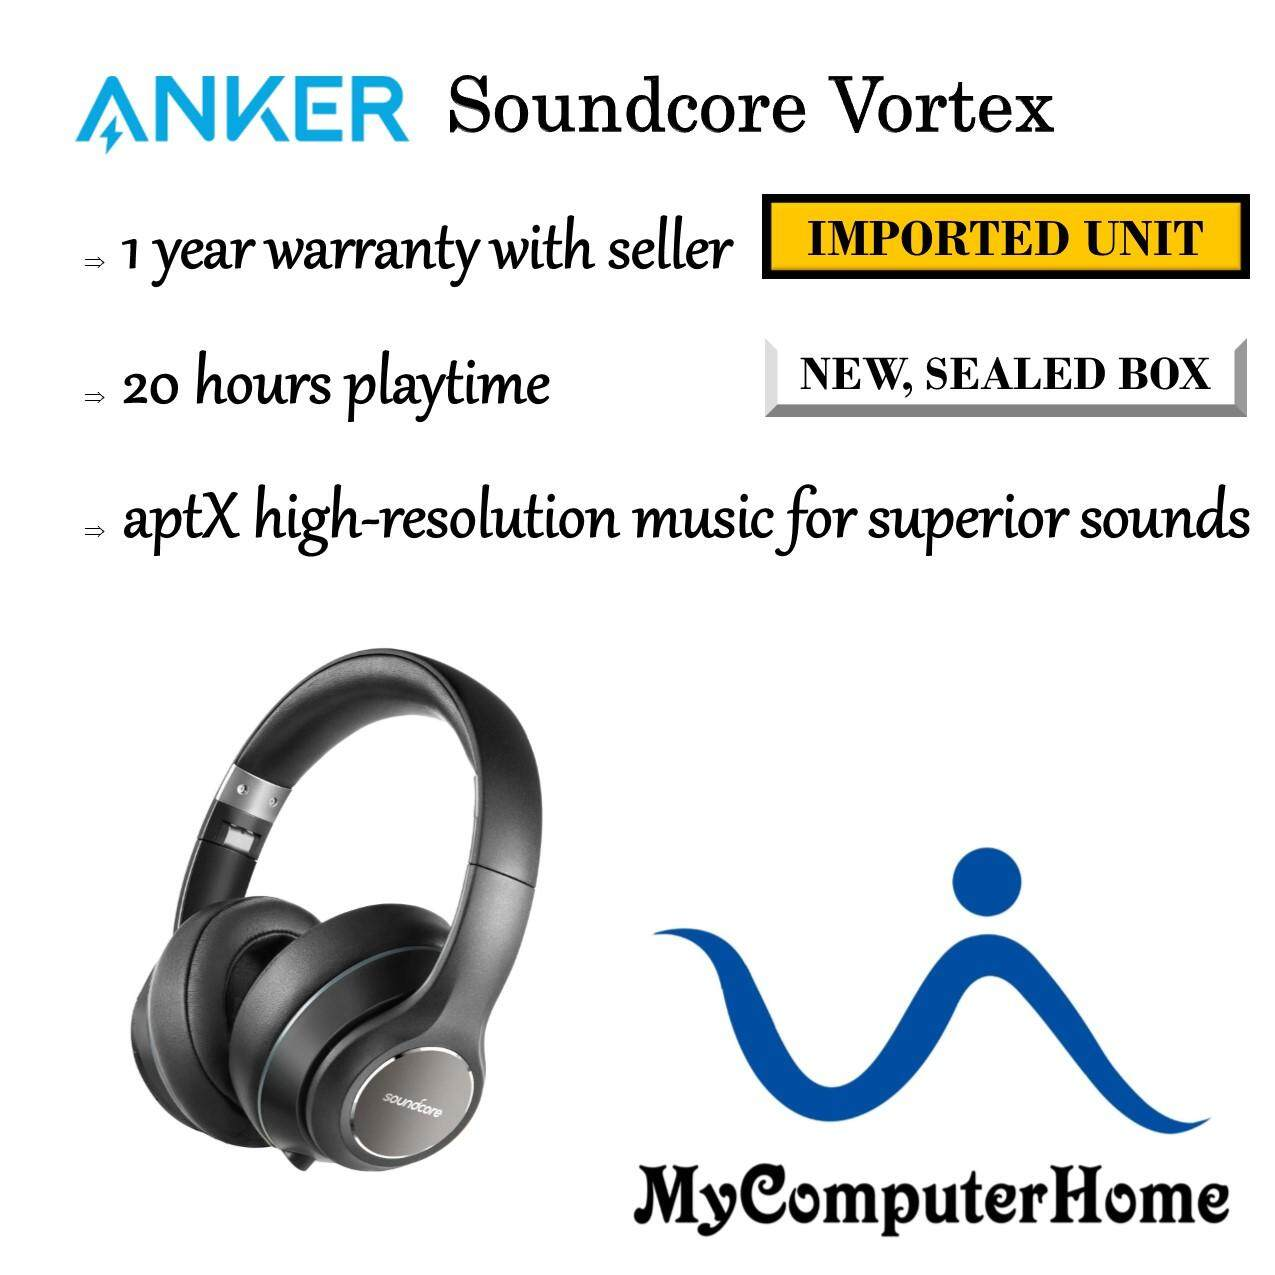 3dbd5b89685 Anker Headphones & Headsets price in Malaysia - Best Anker ...